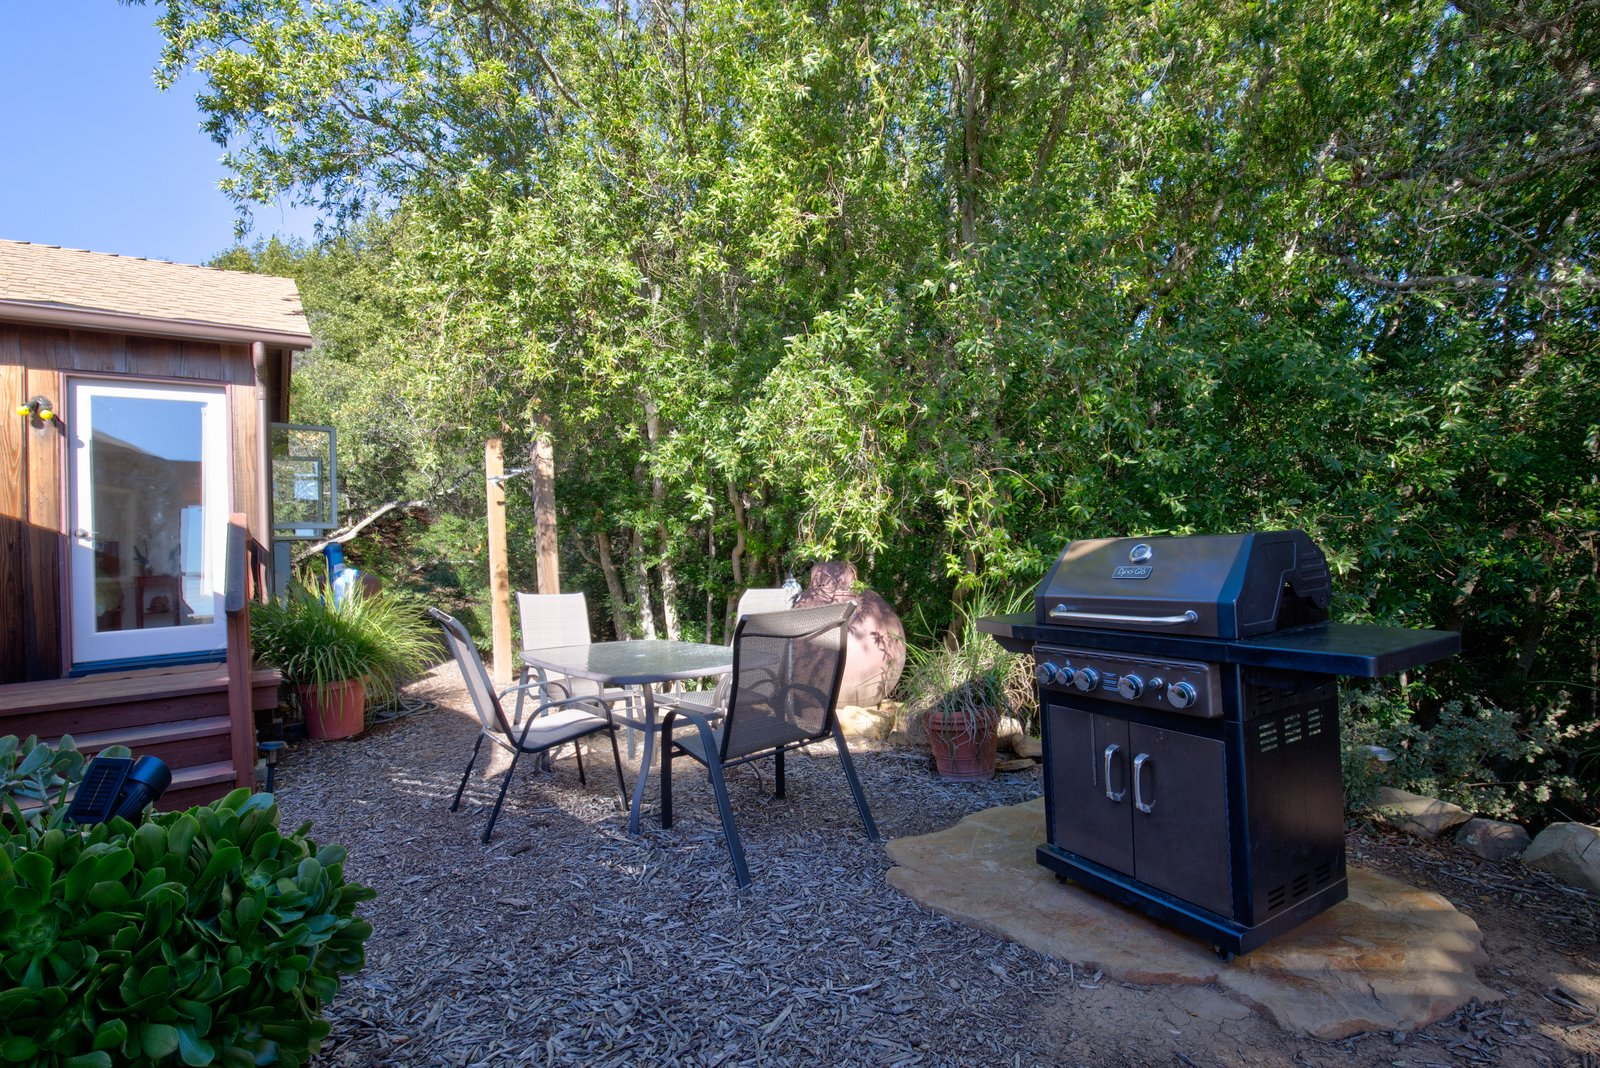 Warm, summer days and evenings call for a grill outside.